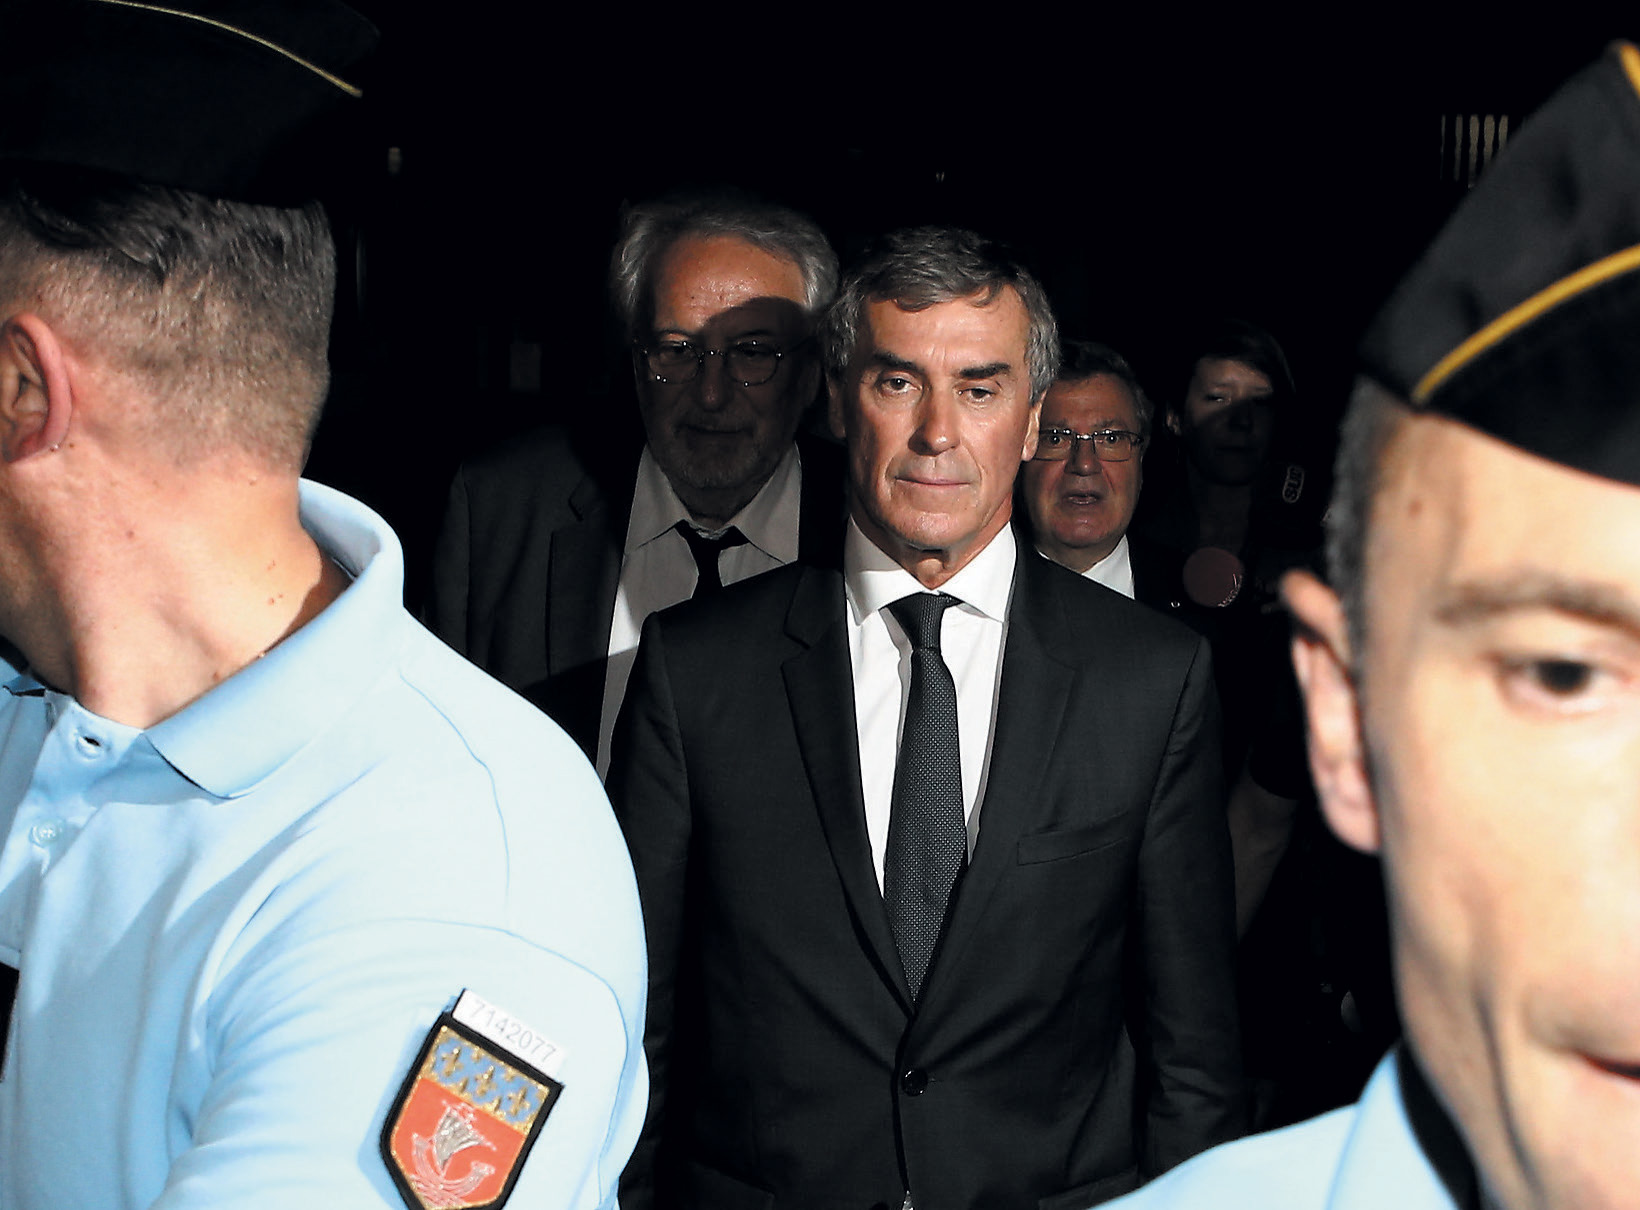 Former French budget minister Jérôme Cahuzac hauled away for tax evasion. His trial opened this September.